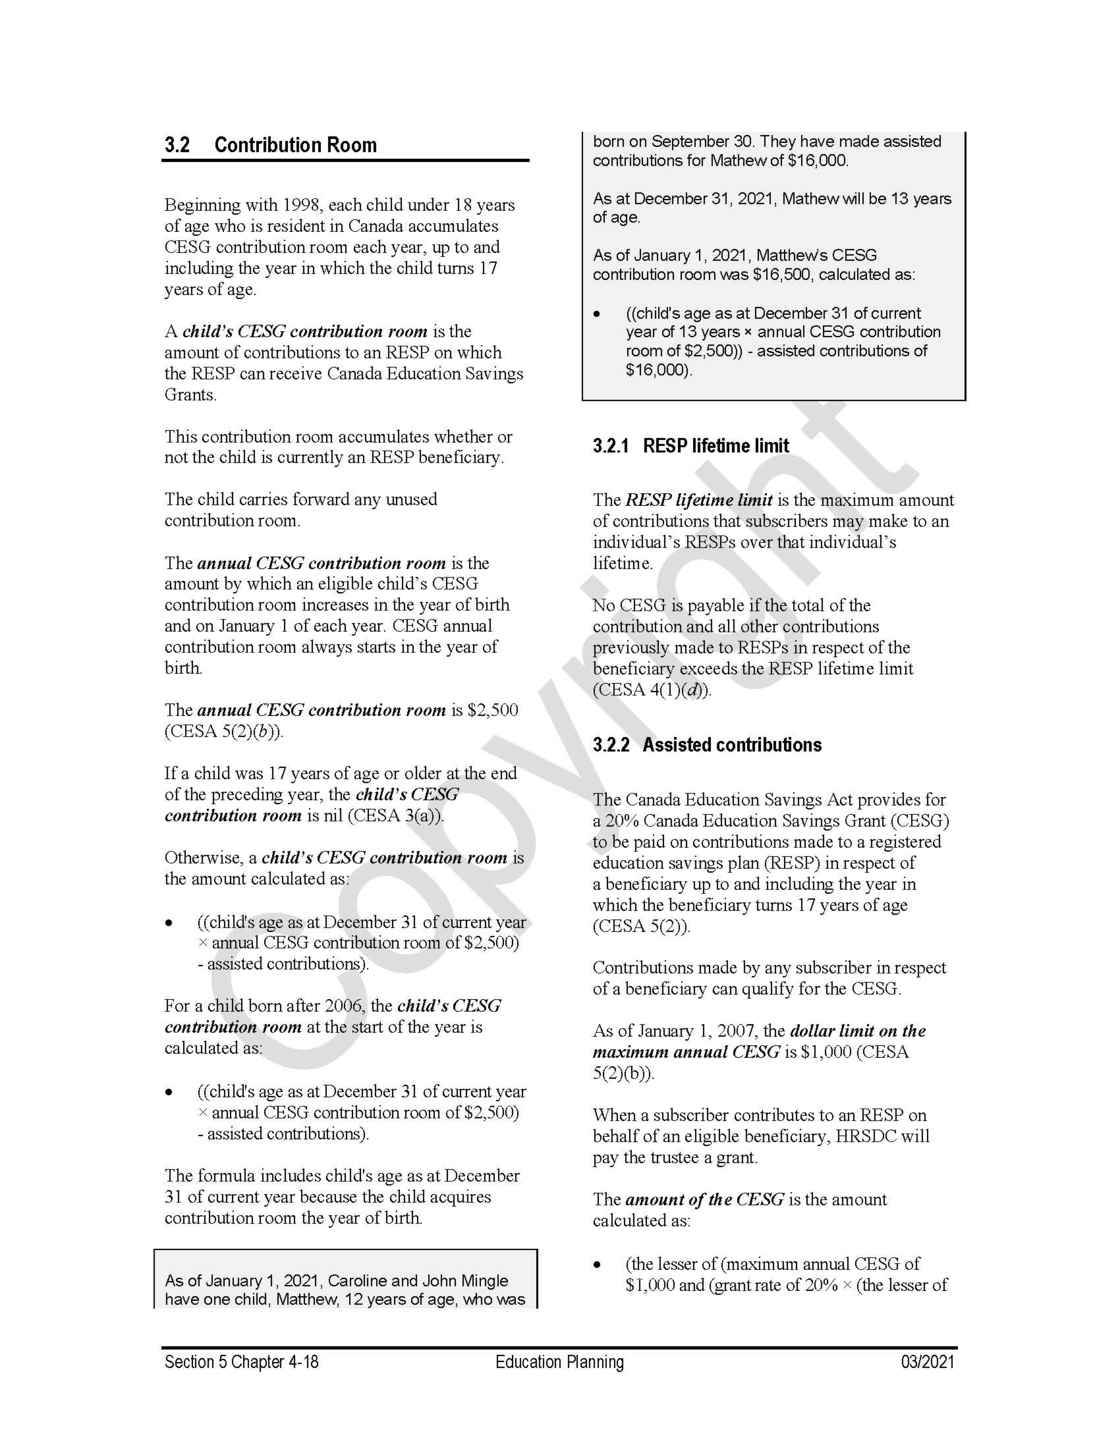 PFP 5-04 RESPs 104 Page_18